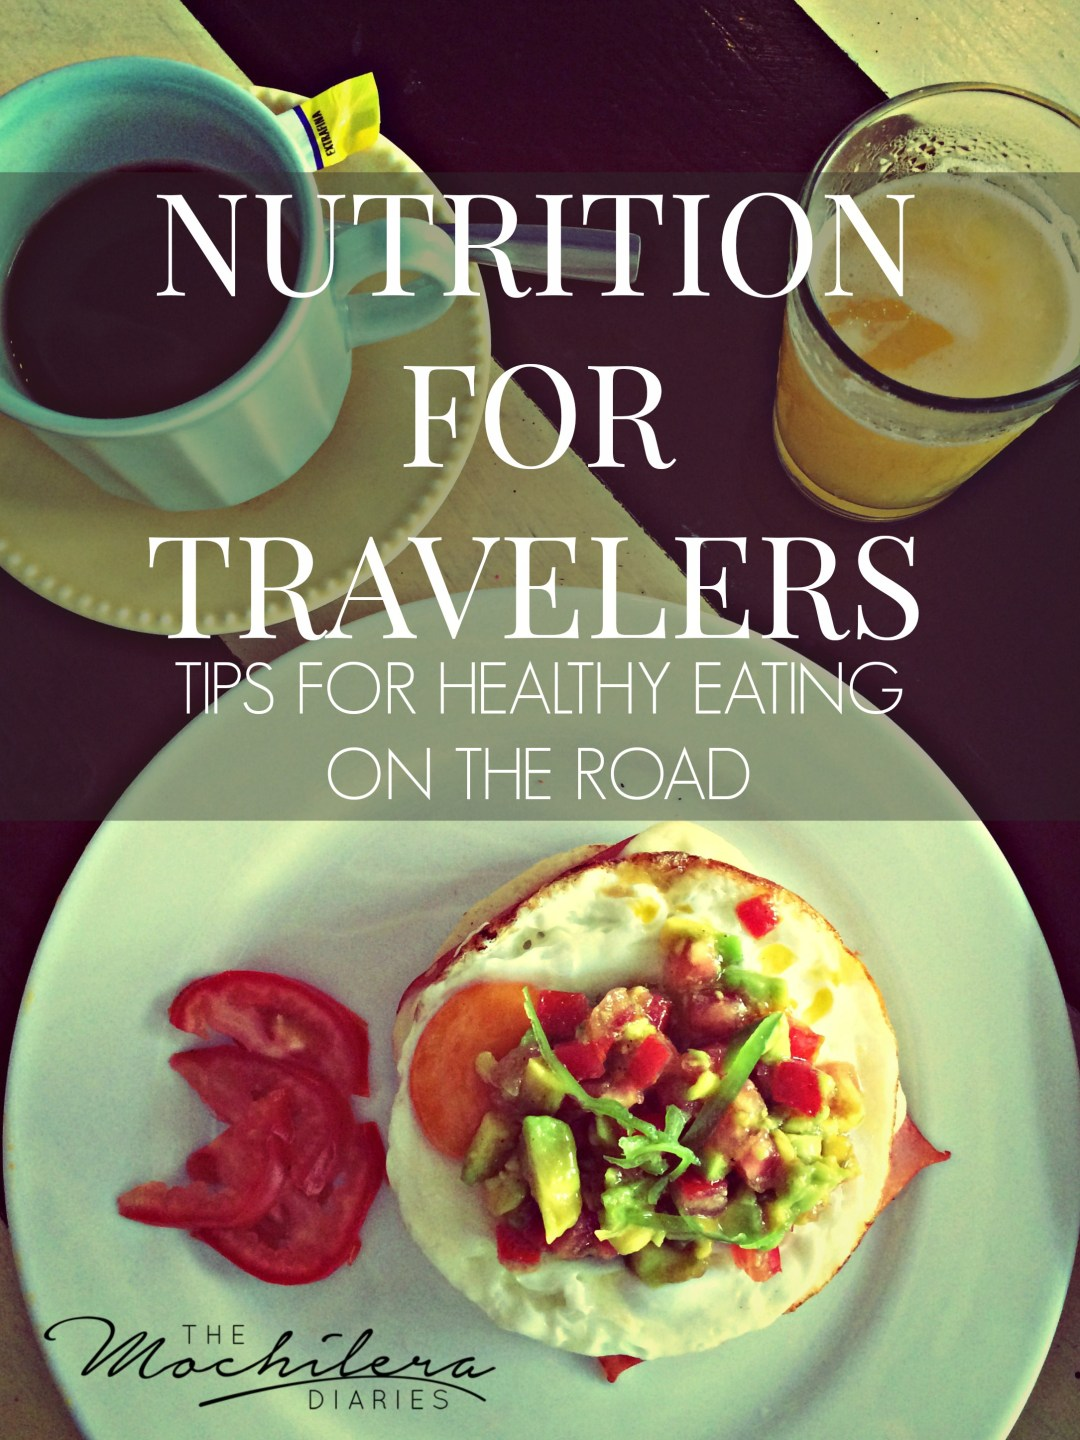 Nutrition tips to help travelers make healthy choices on the road | The Mochilera Diaries